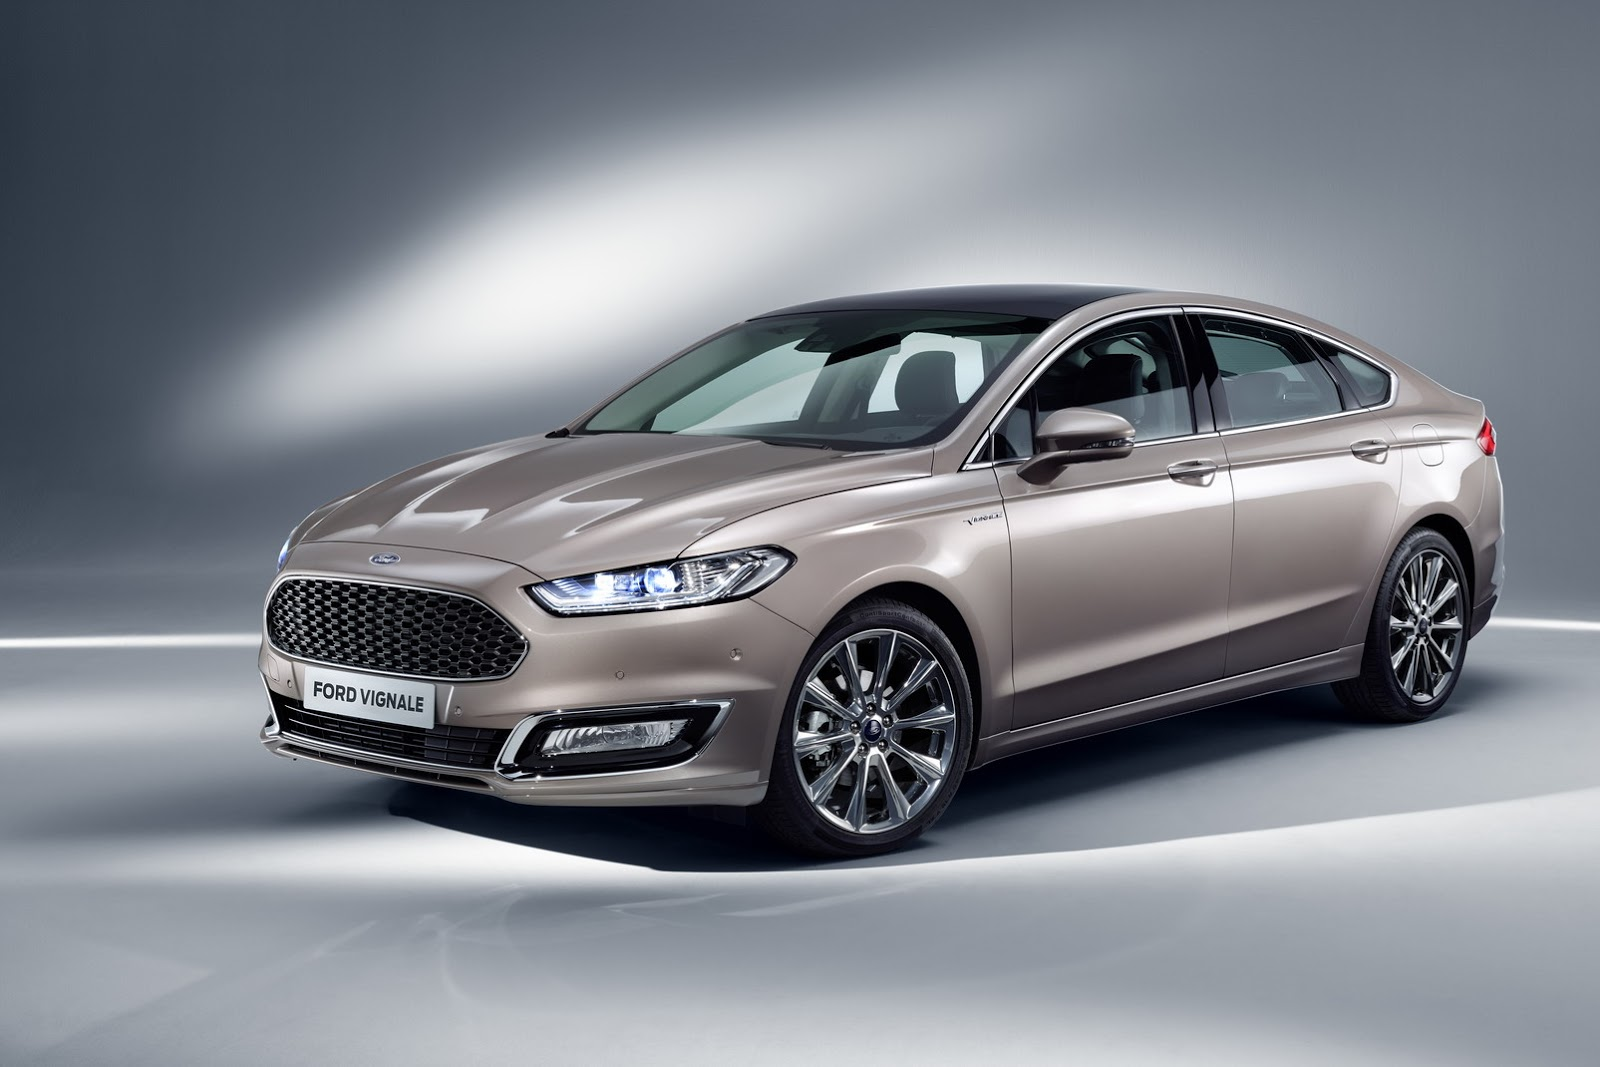 ford luxes up edge kuga mondeo s max with vignale makeover carscoops. Black Bedroom Furniture Sets. Home Design Ideas